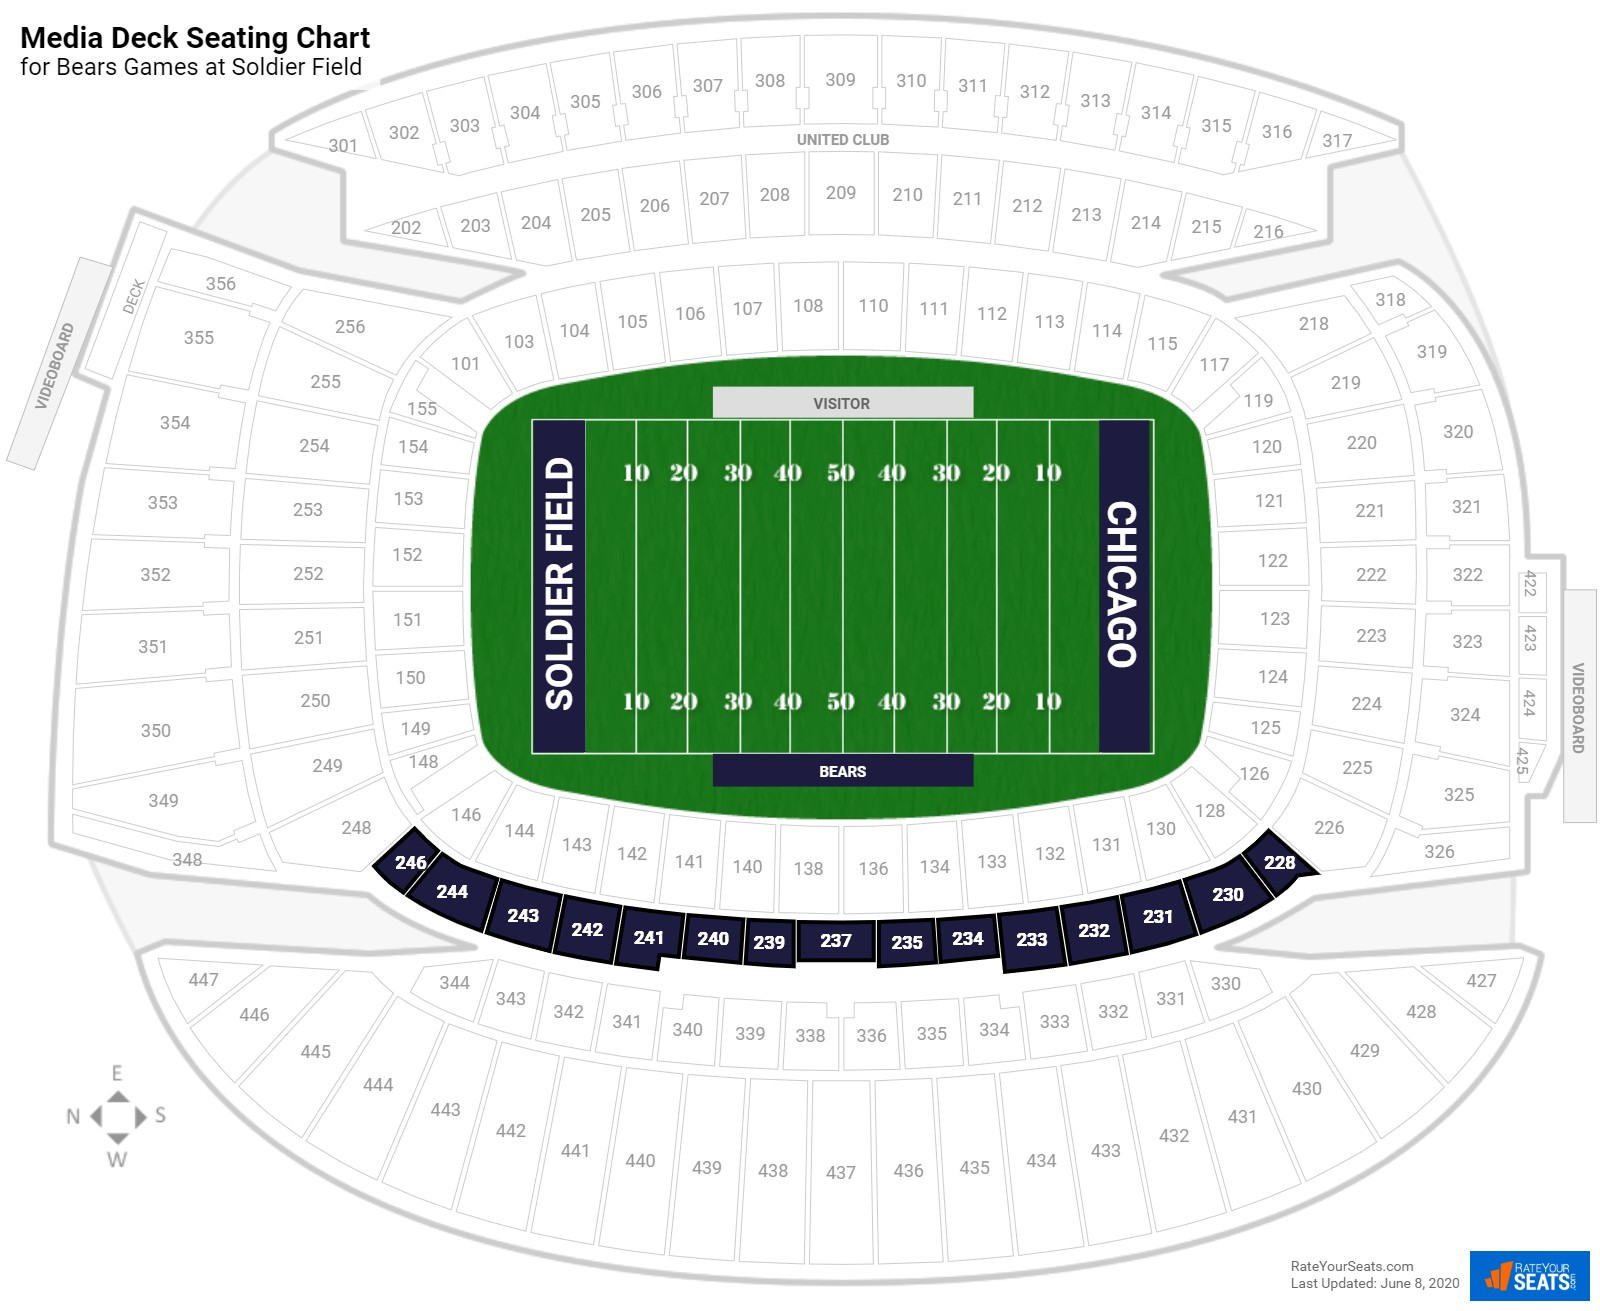 Soldier Field Media Deck seating chart